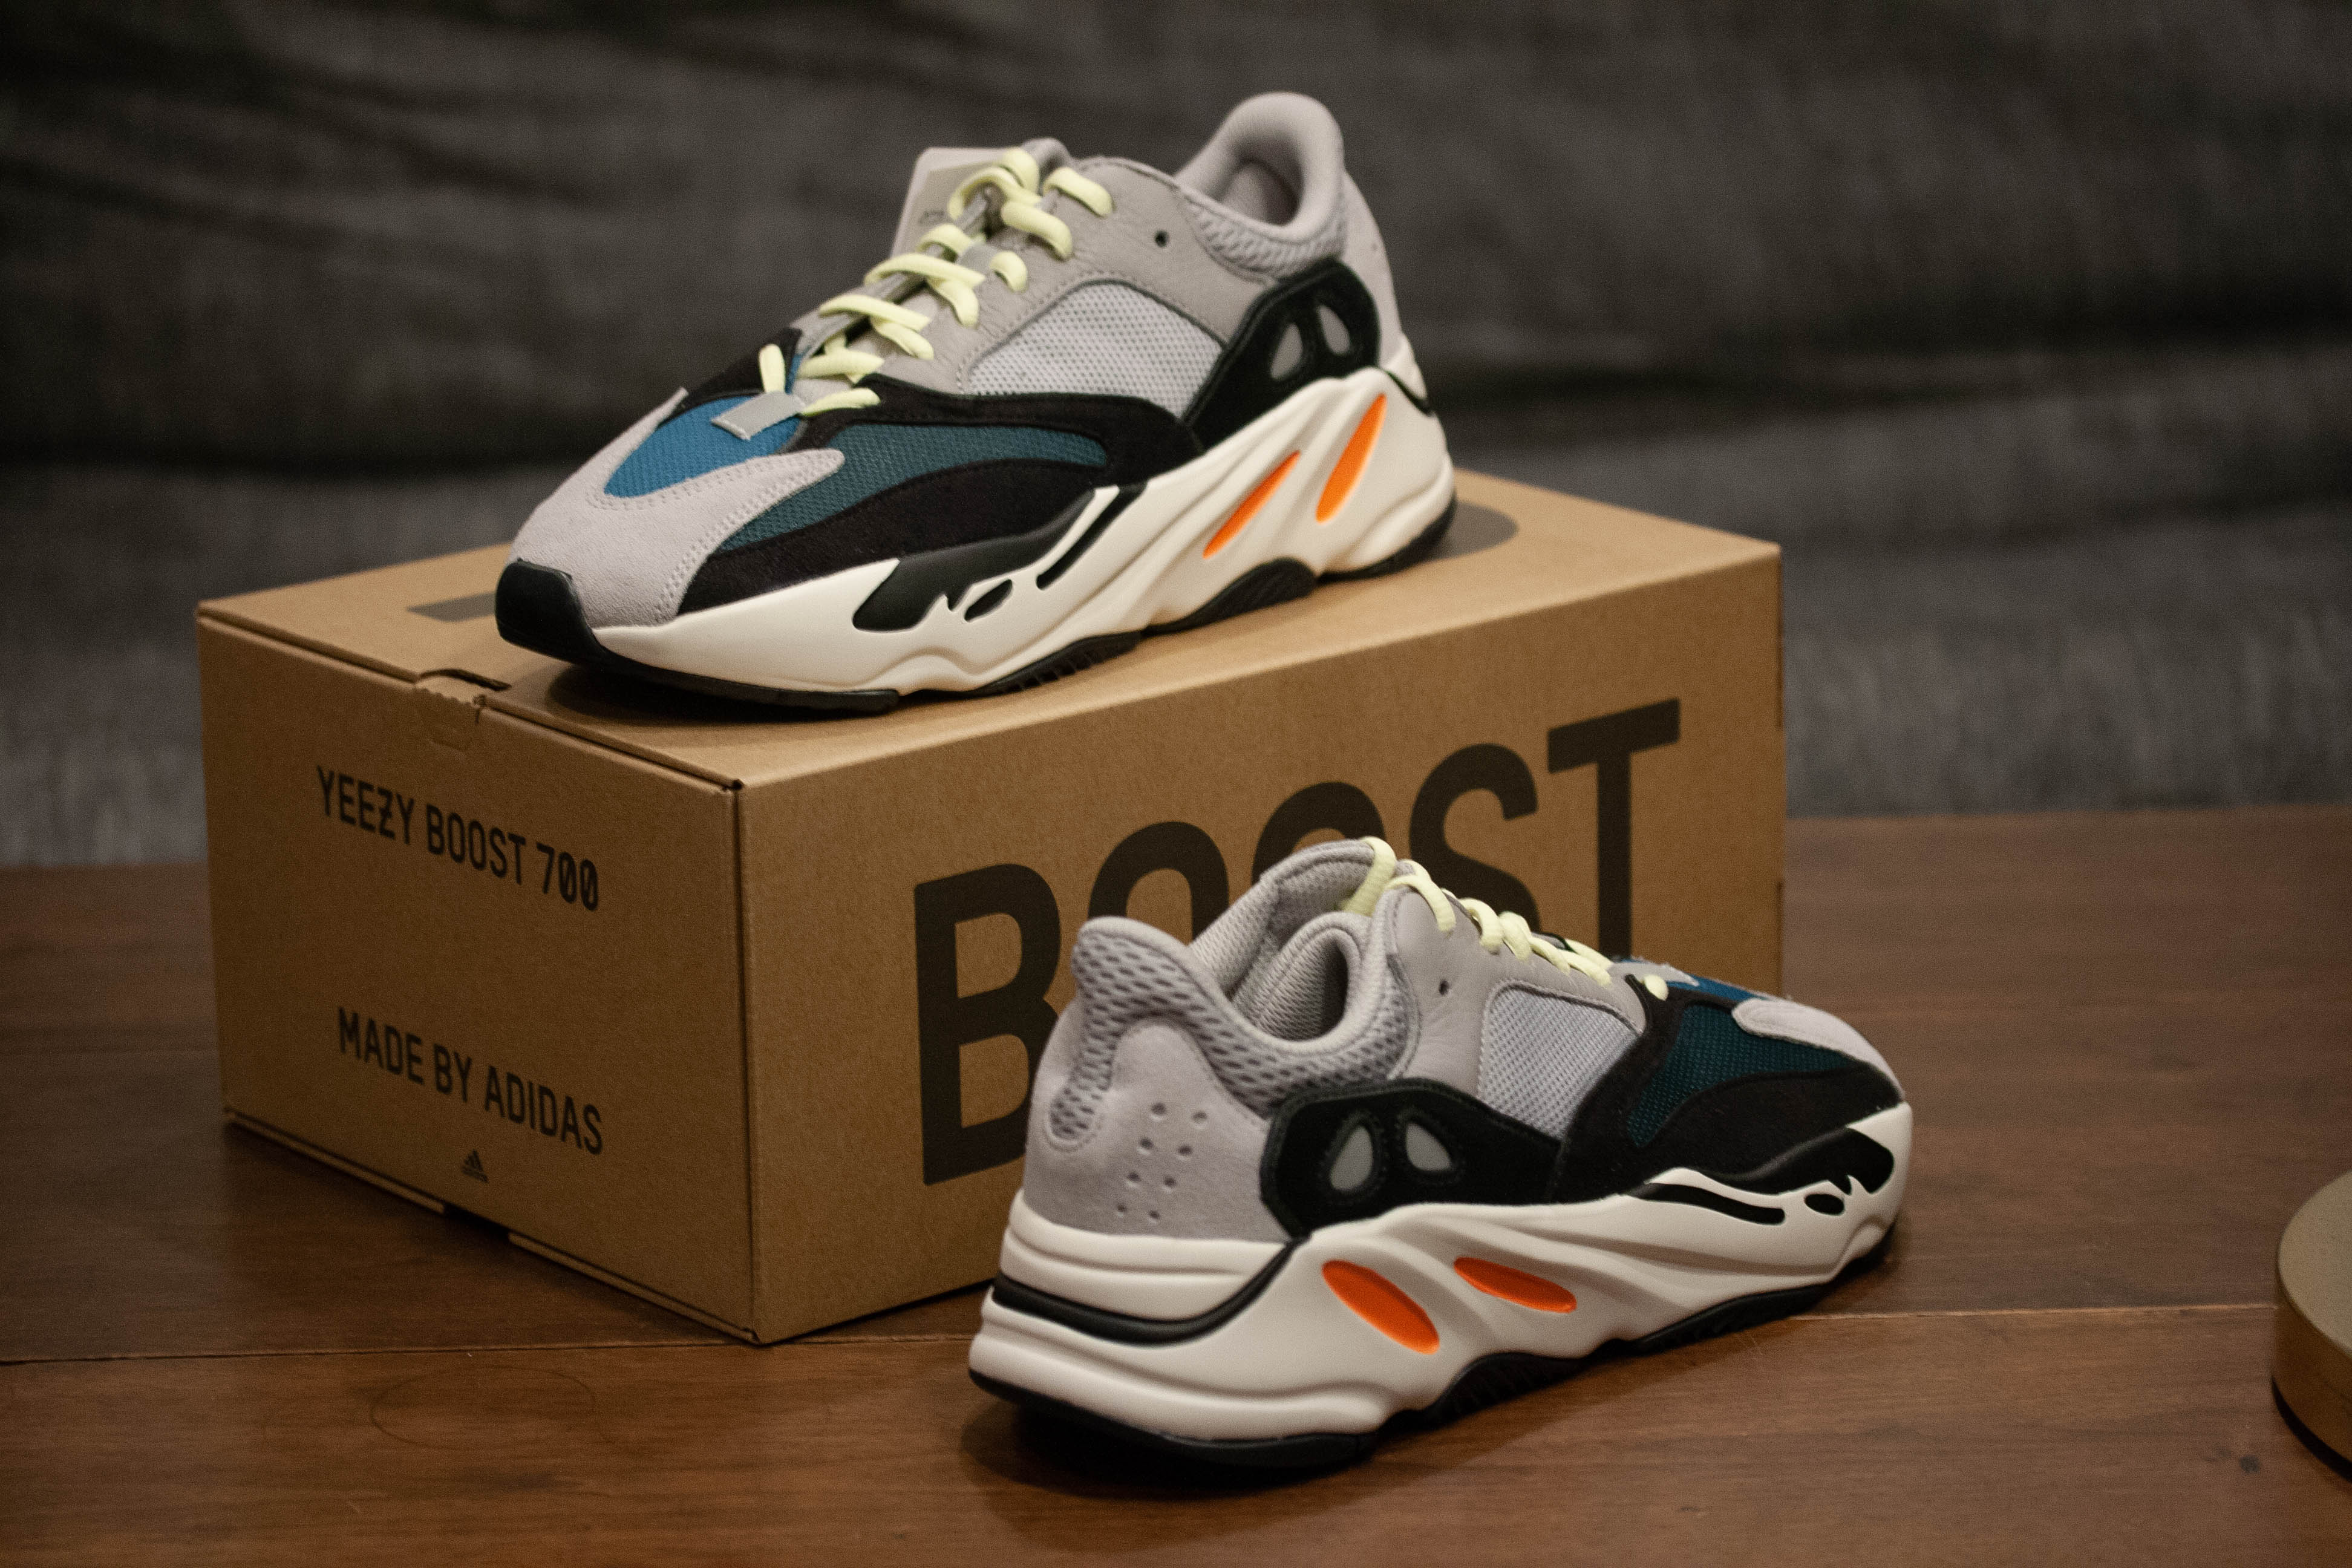 6257c0d2a Adidas × Adidas Kanye West × Yeezy Boost. Yeezy 700 Shoes Solid Grey   Core  White B75571